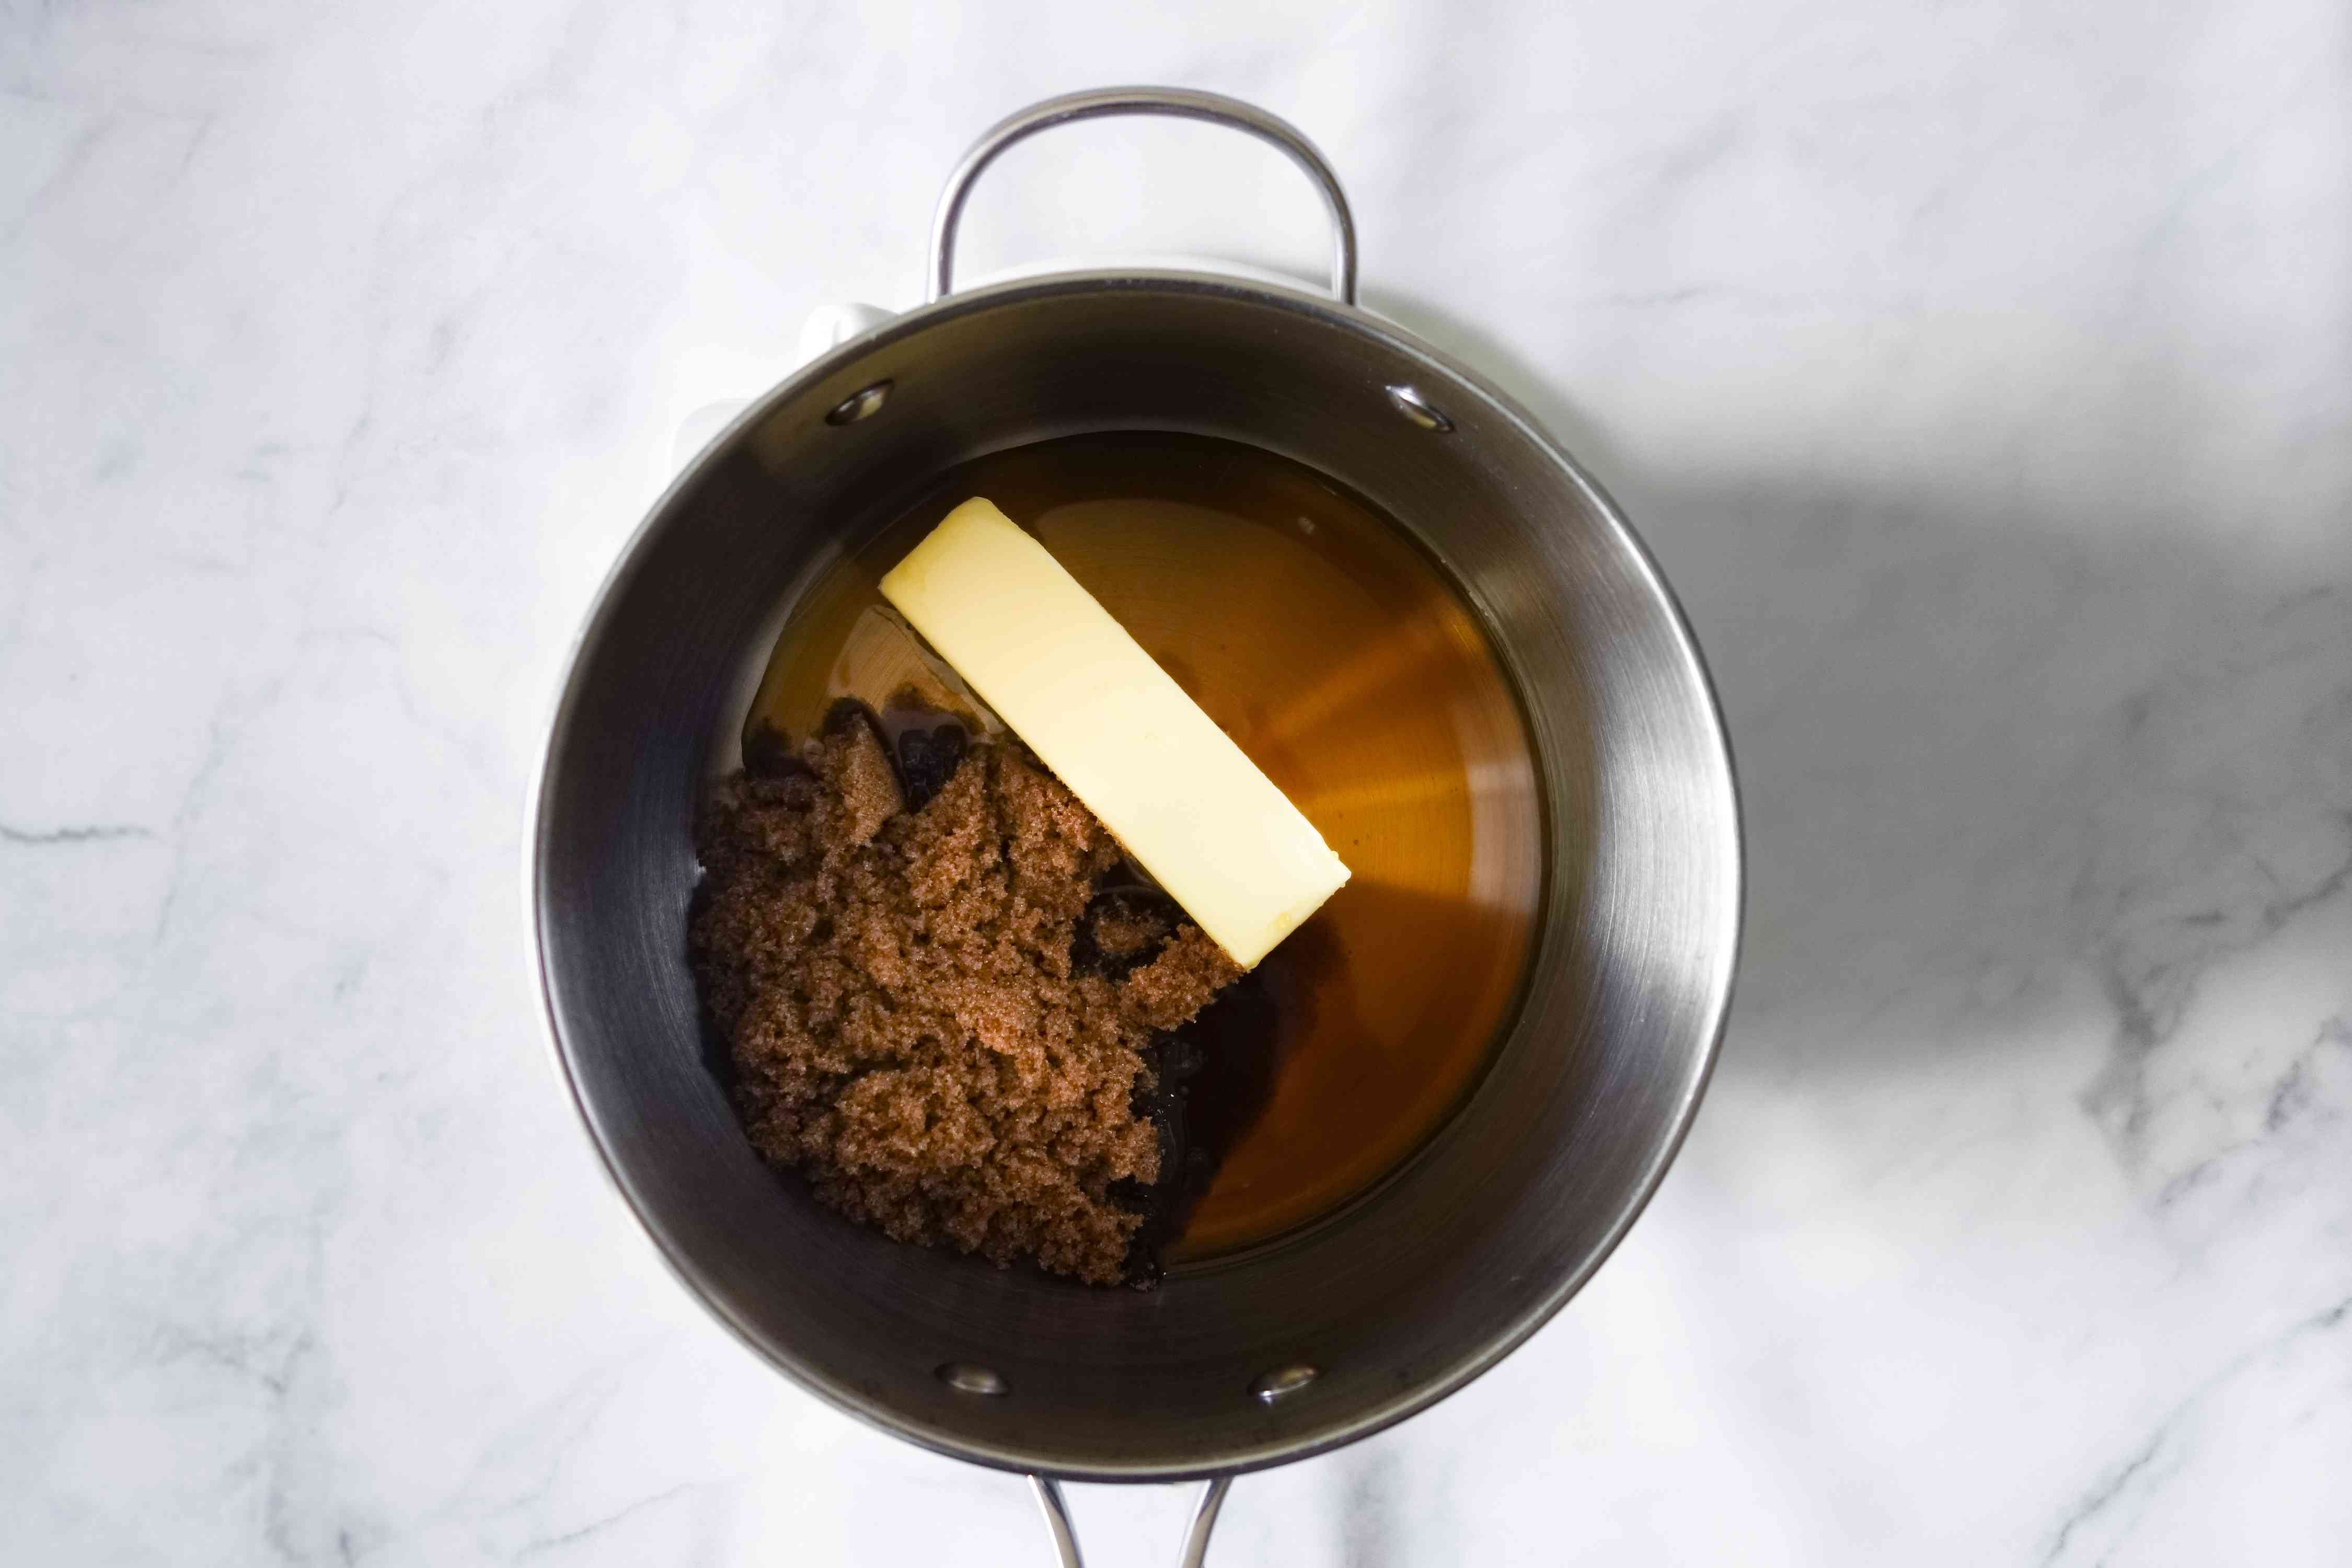 butter, sugar and maple syrup in a saucepan